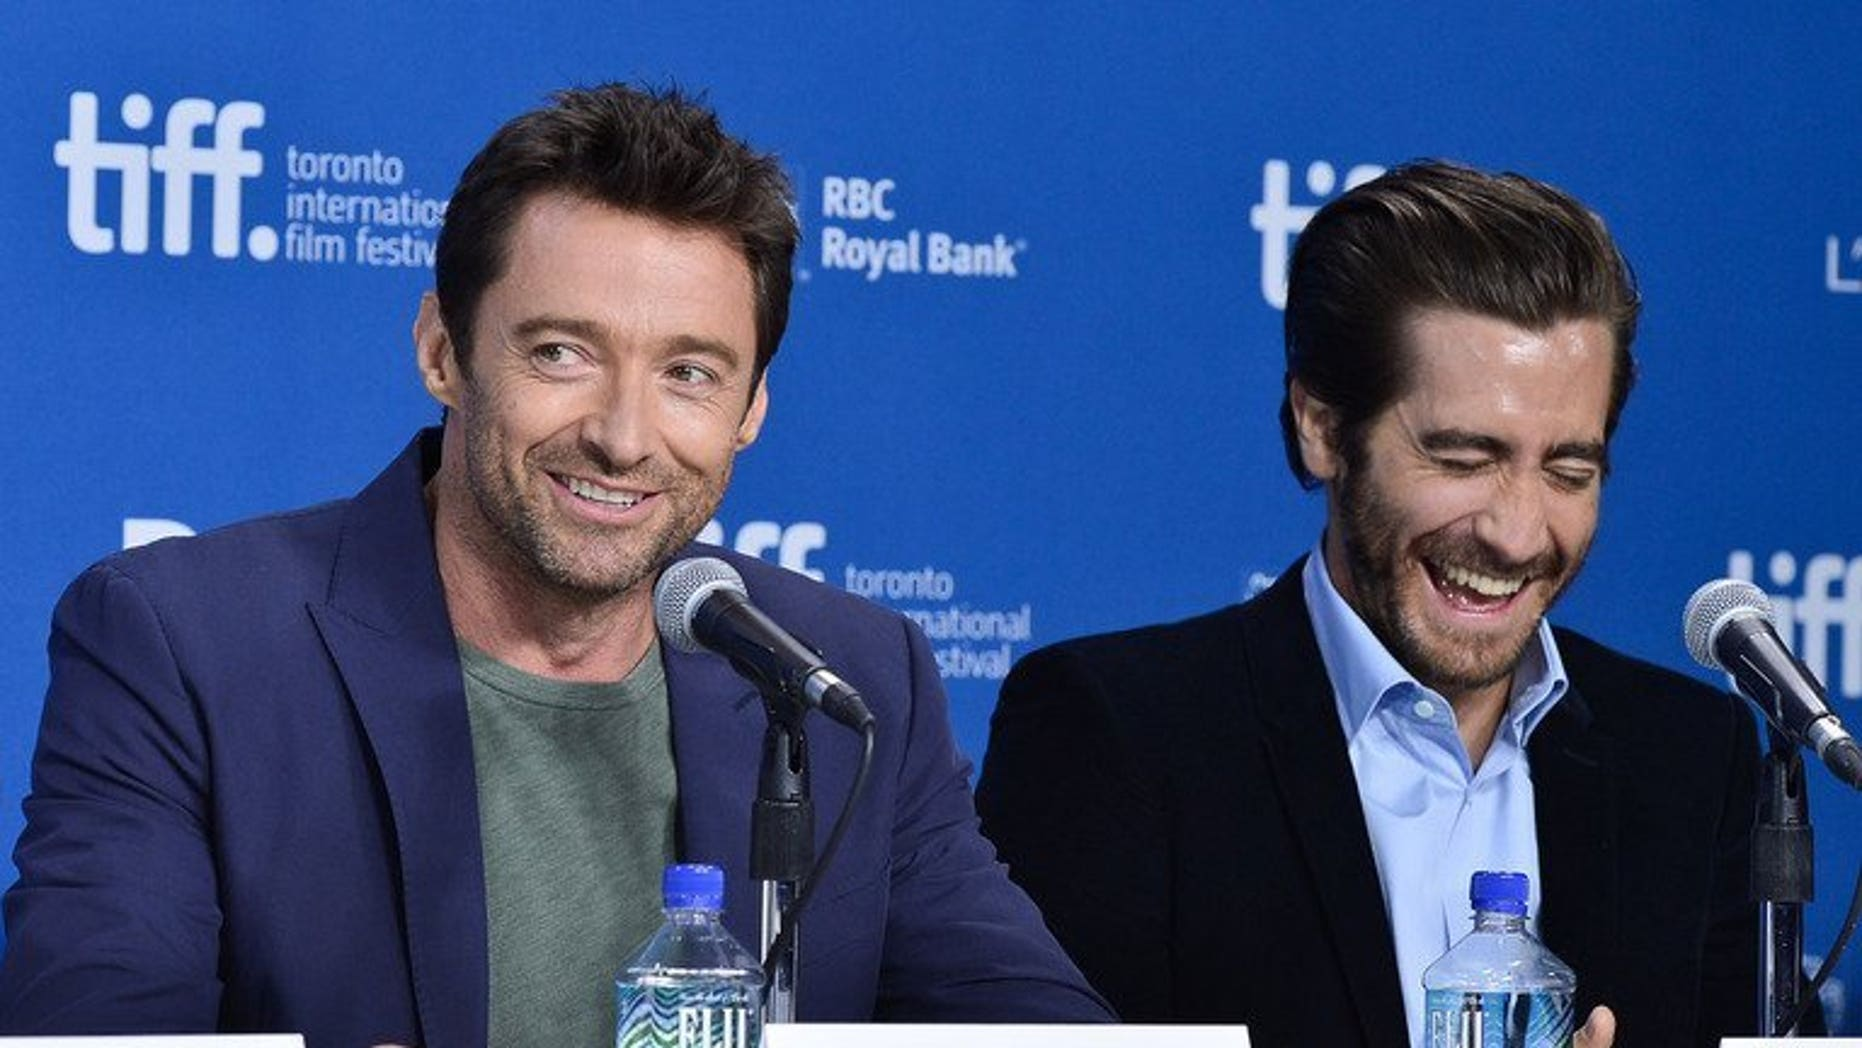 """Actors Hugh Jackman (L) and Jake Gyllenhaal speak onstage at the """"Prisoners"""" press conference during the 2013 Toronto International Film Festival on September 6, 2013 in Toronto, Canada. In Jackman's family, they stood on the couch and cheered for the accountants who tallied the Oscar ballots as they appeared on stage, he revealed Saturday."""